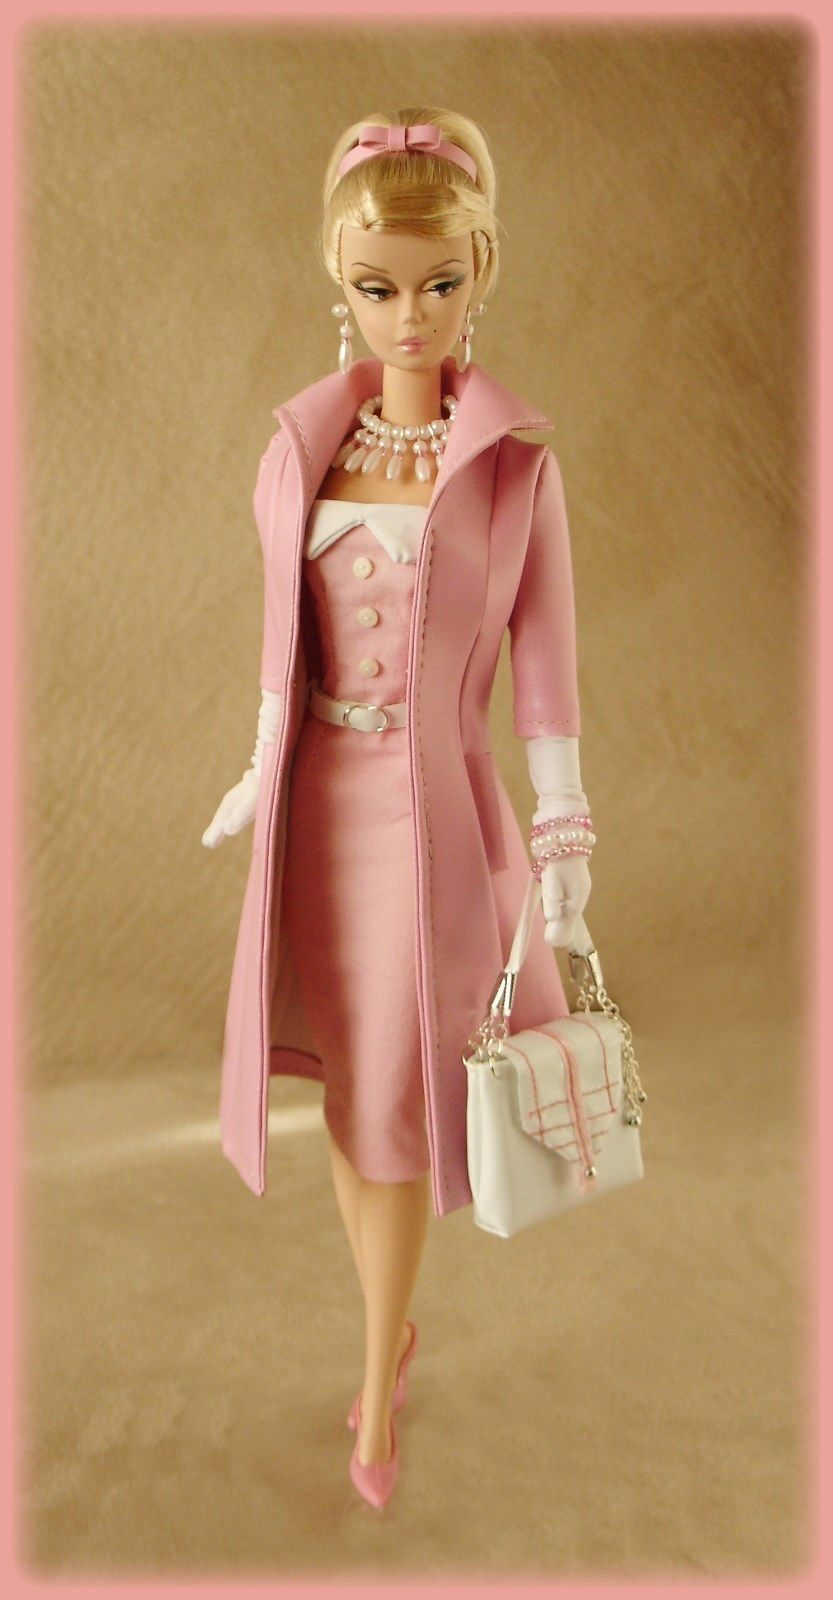 Love Silkstone Barbies for their absolutely